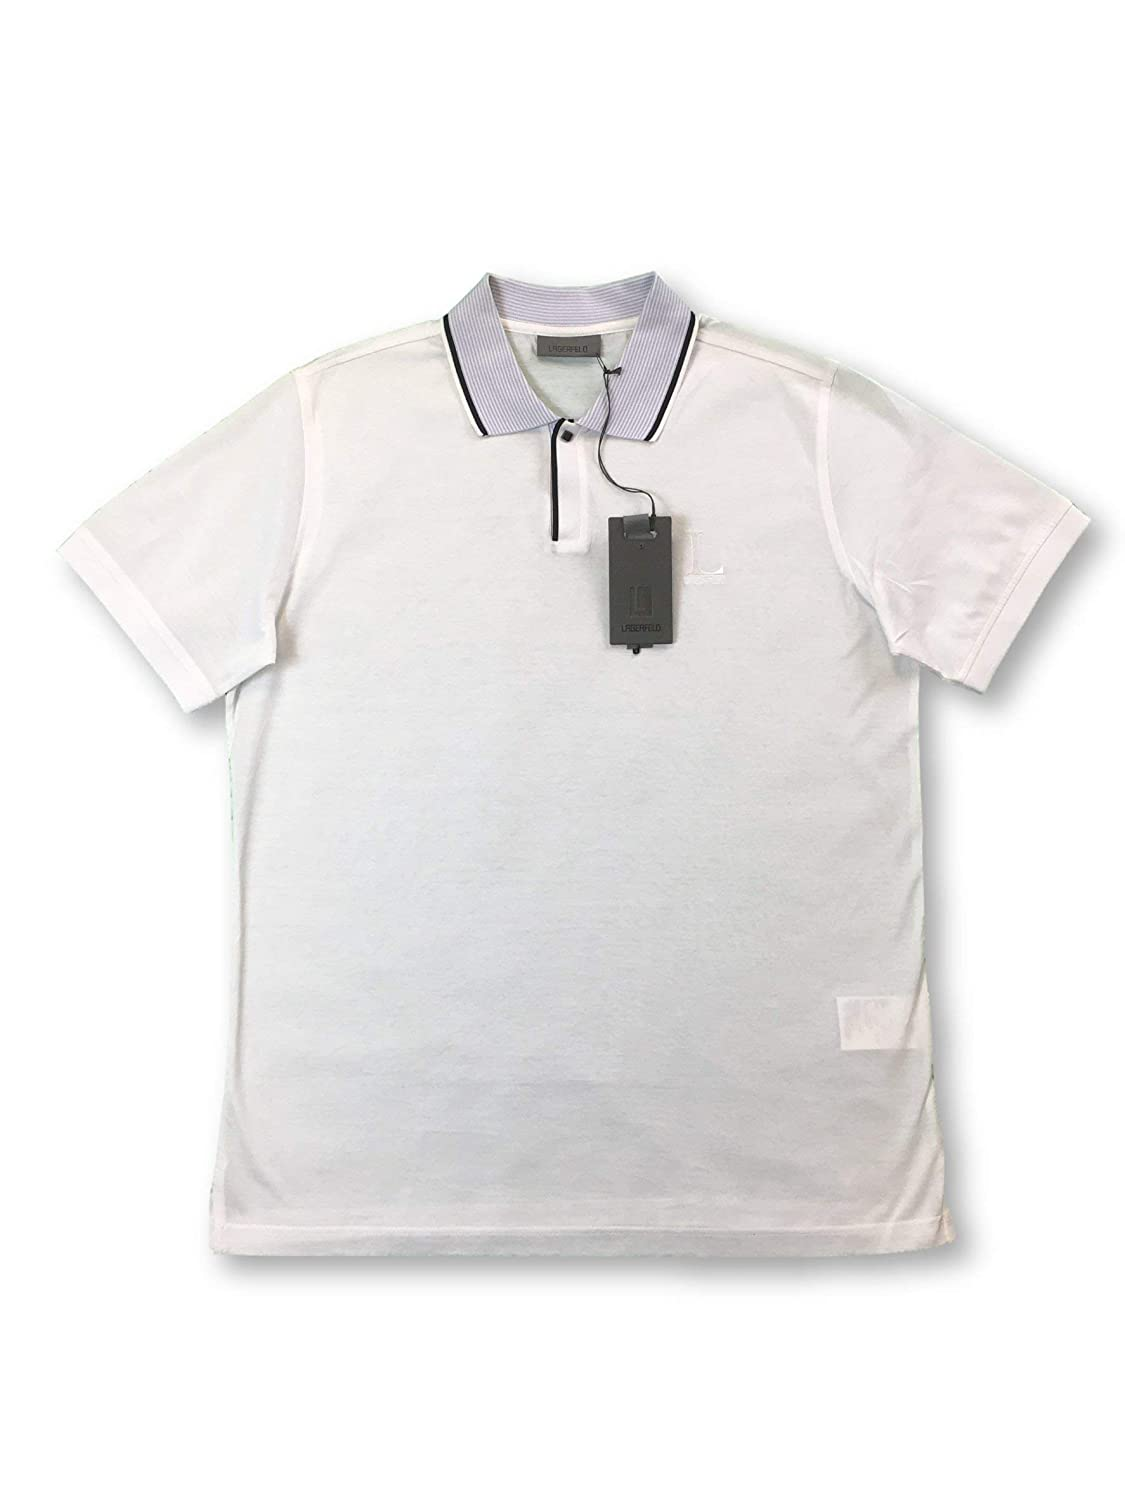 Lagerfeld Polo Shirt in White with Blue/Black Stripe Collar L ...